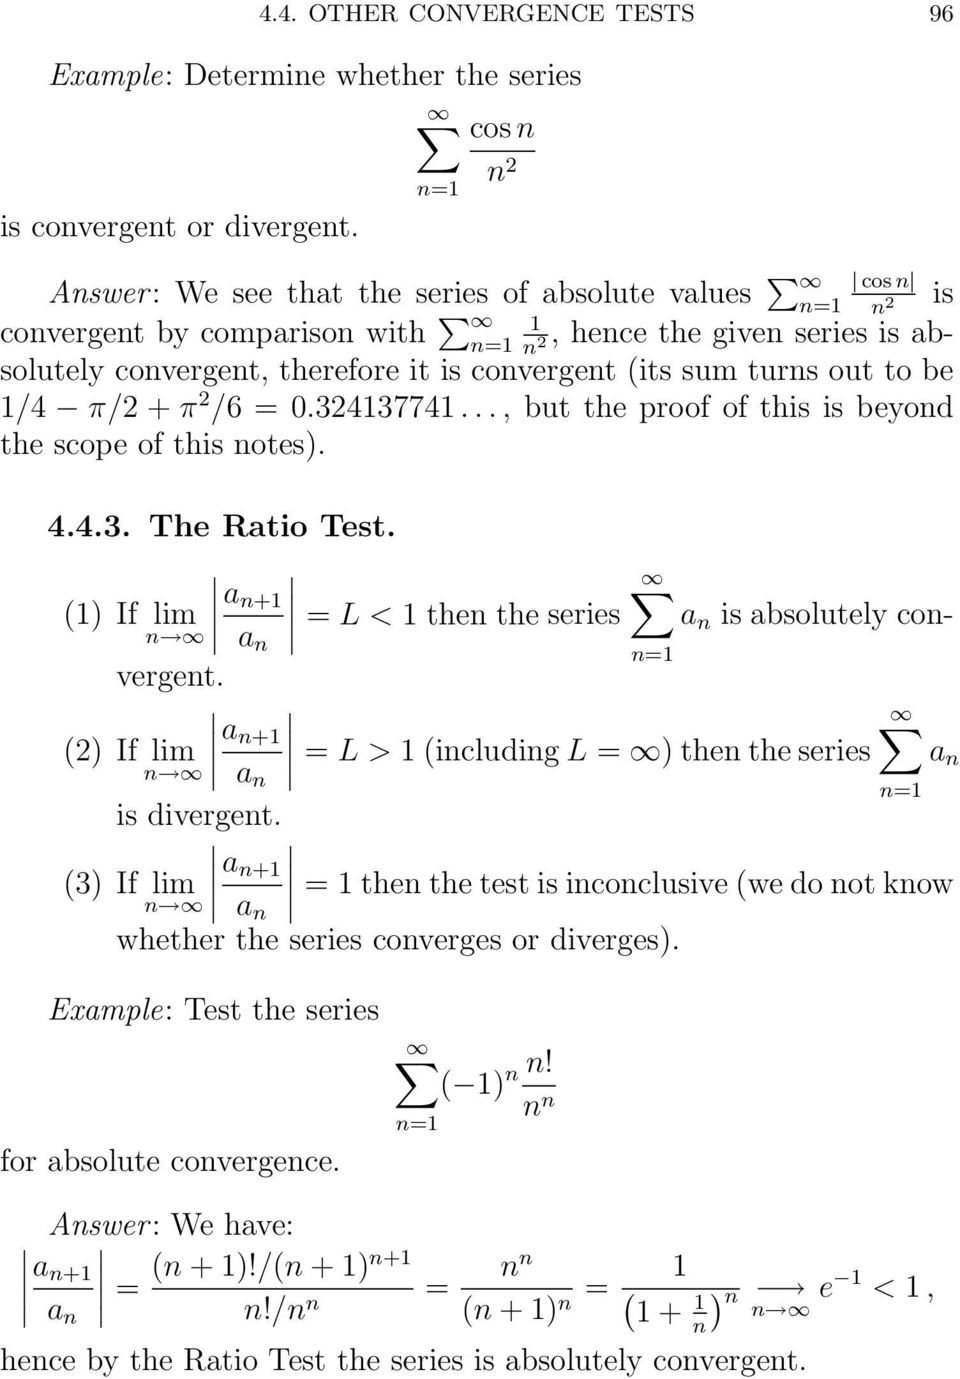 0.343774..., but the proof of this is beyod the scope of this otes). 4.4.3. The Ratio Test. () If lim a + = L < the the series a is absolutely coverget.